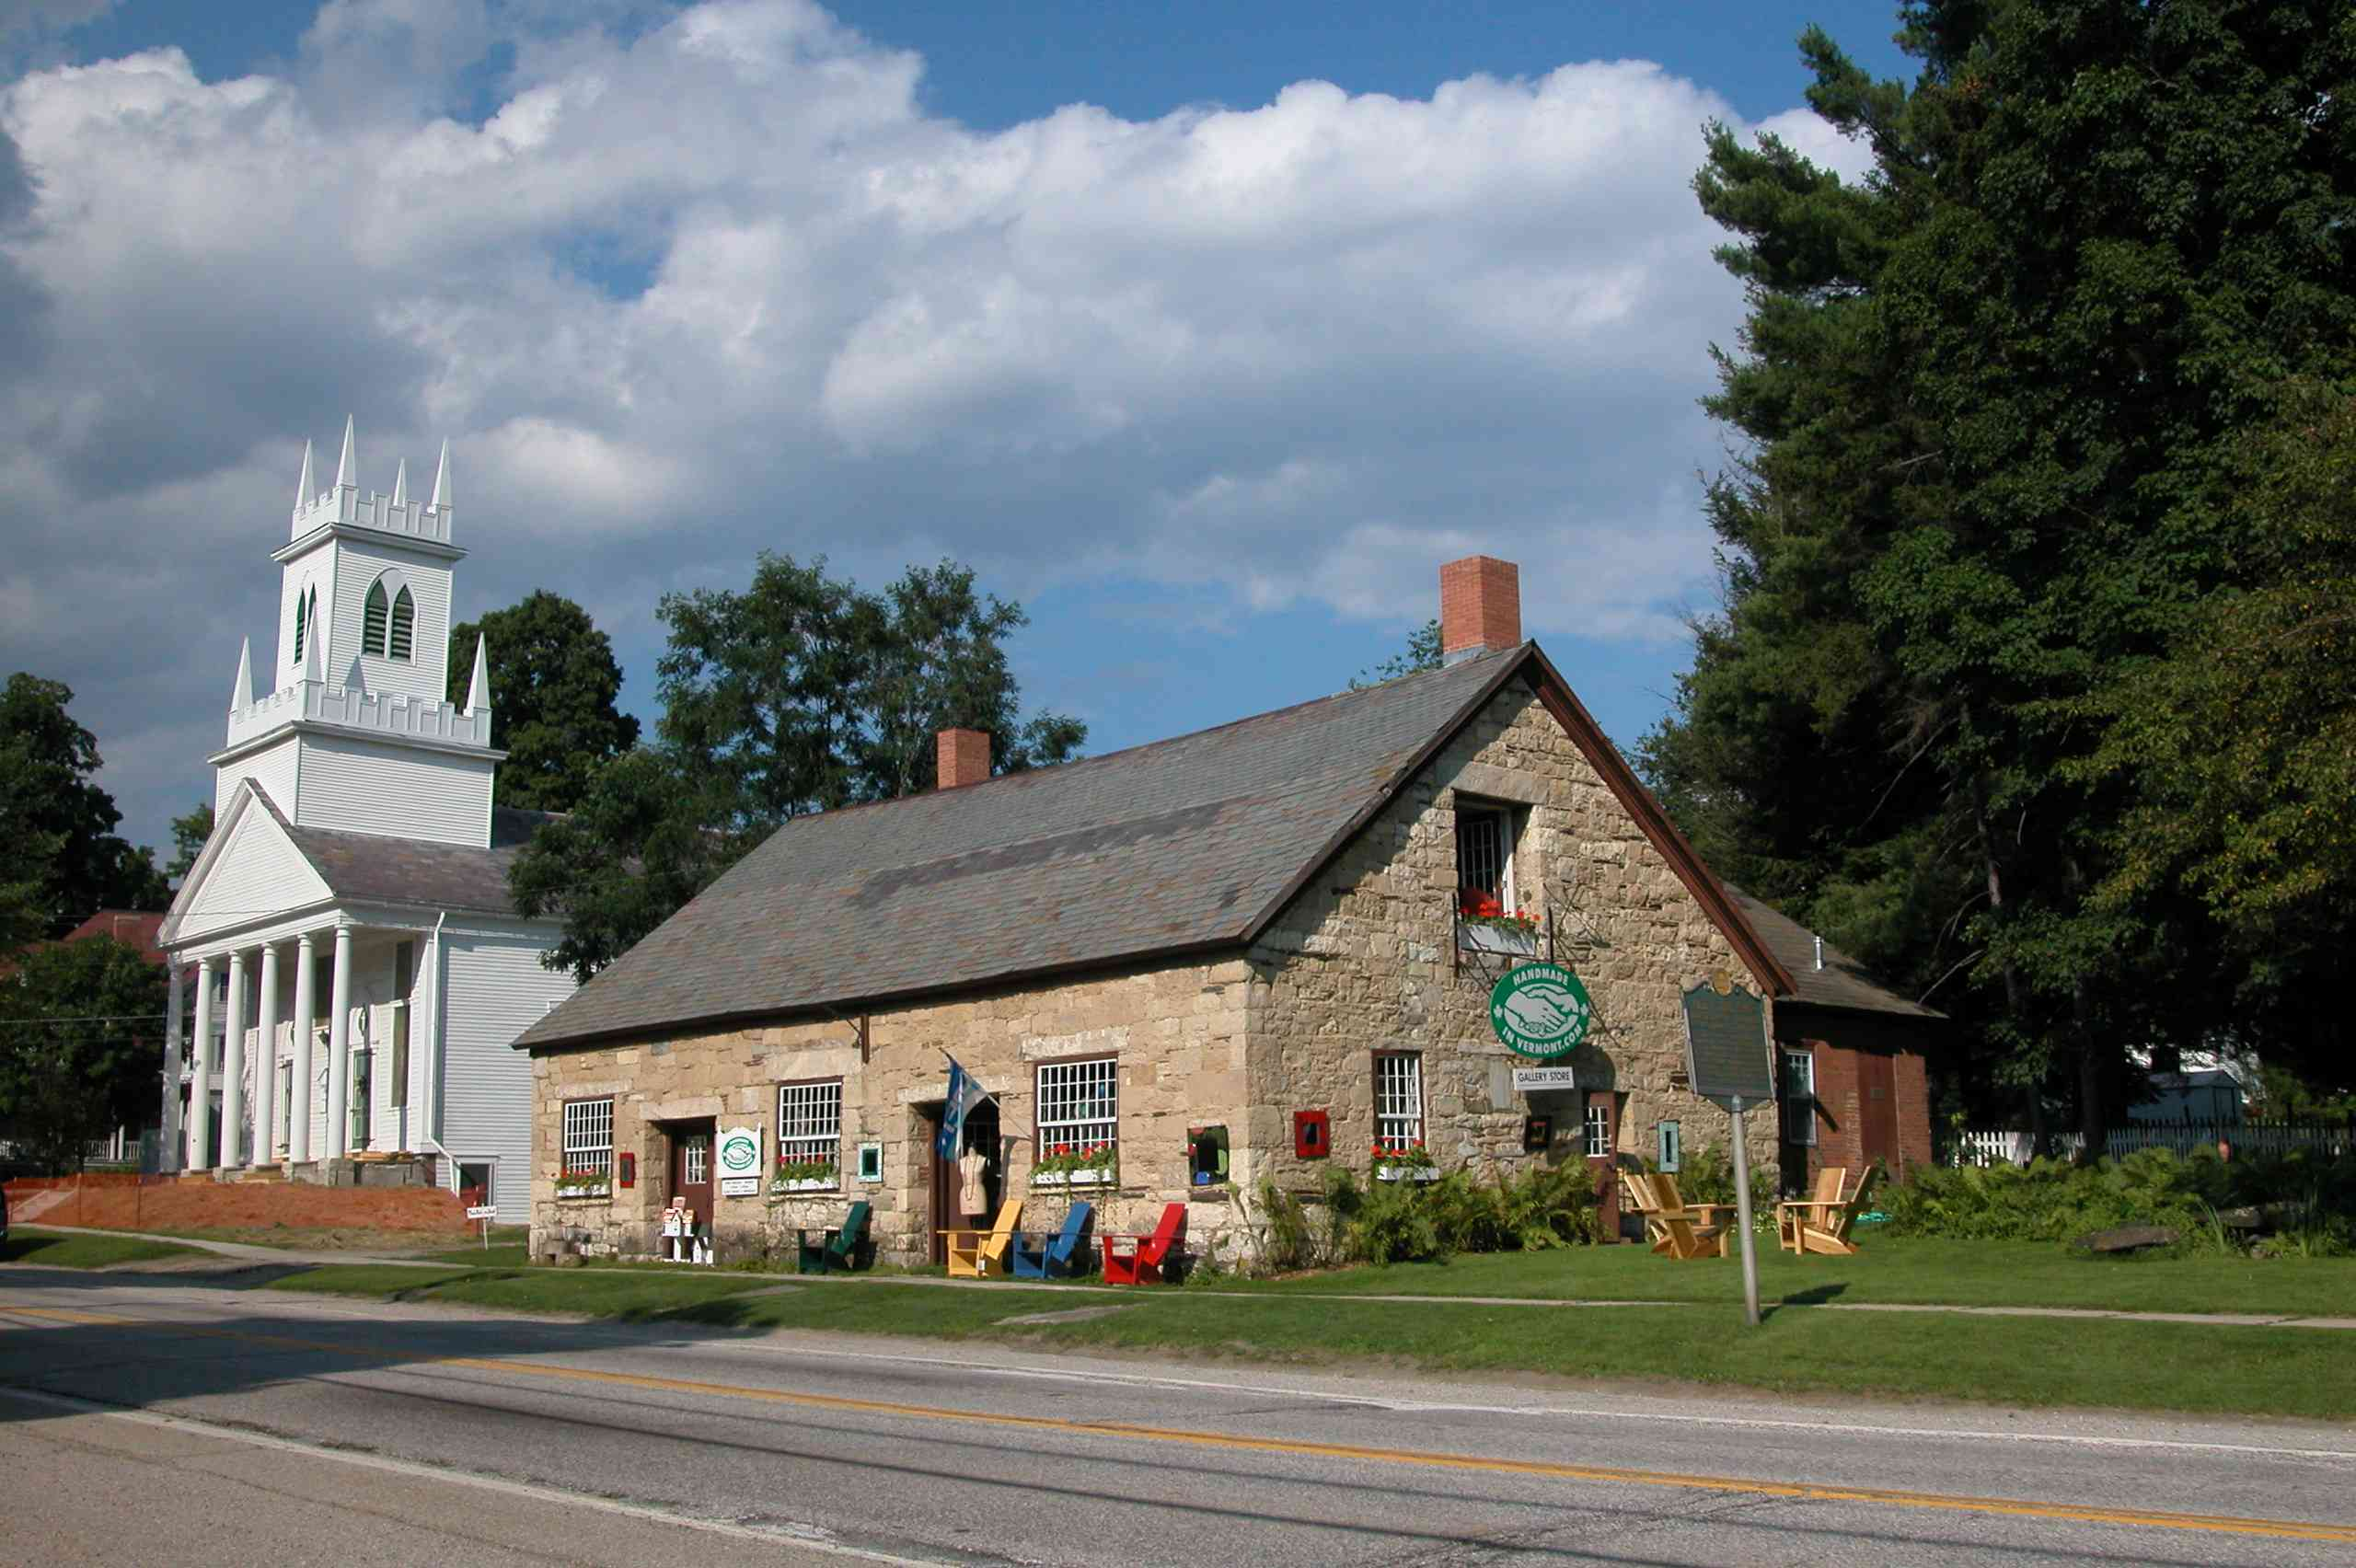 Stone general store on a street with a white buildings in Wallingford, Vermont